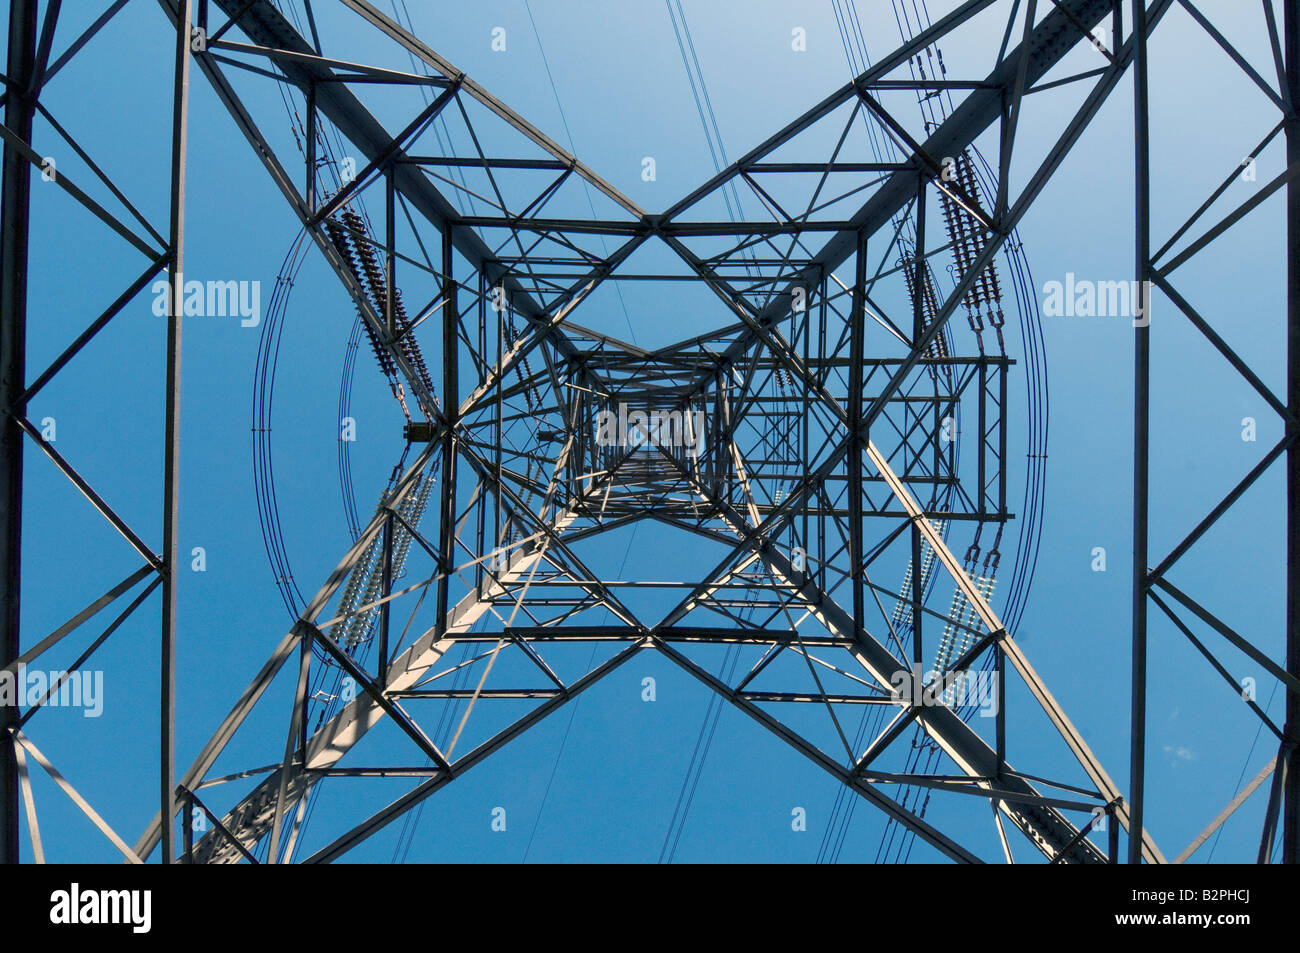 A low level view of an electricity pylon - Stock Image